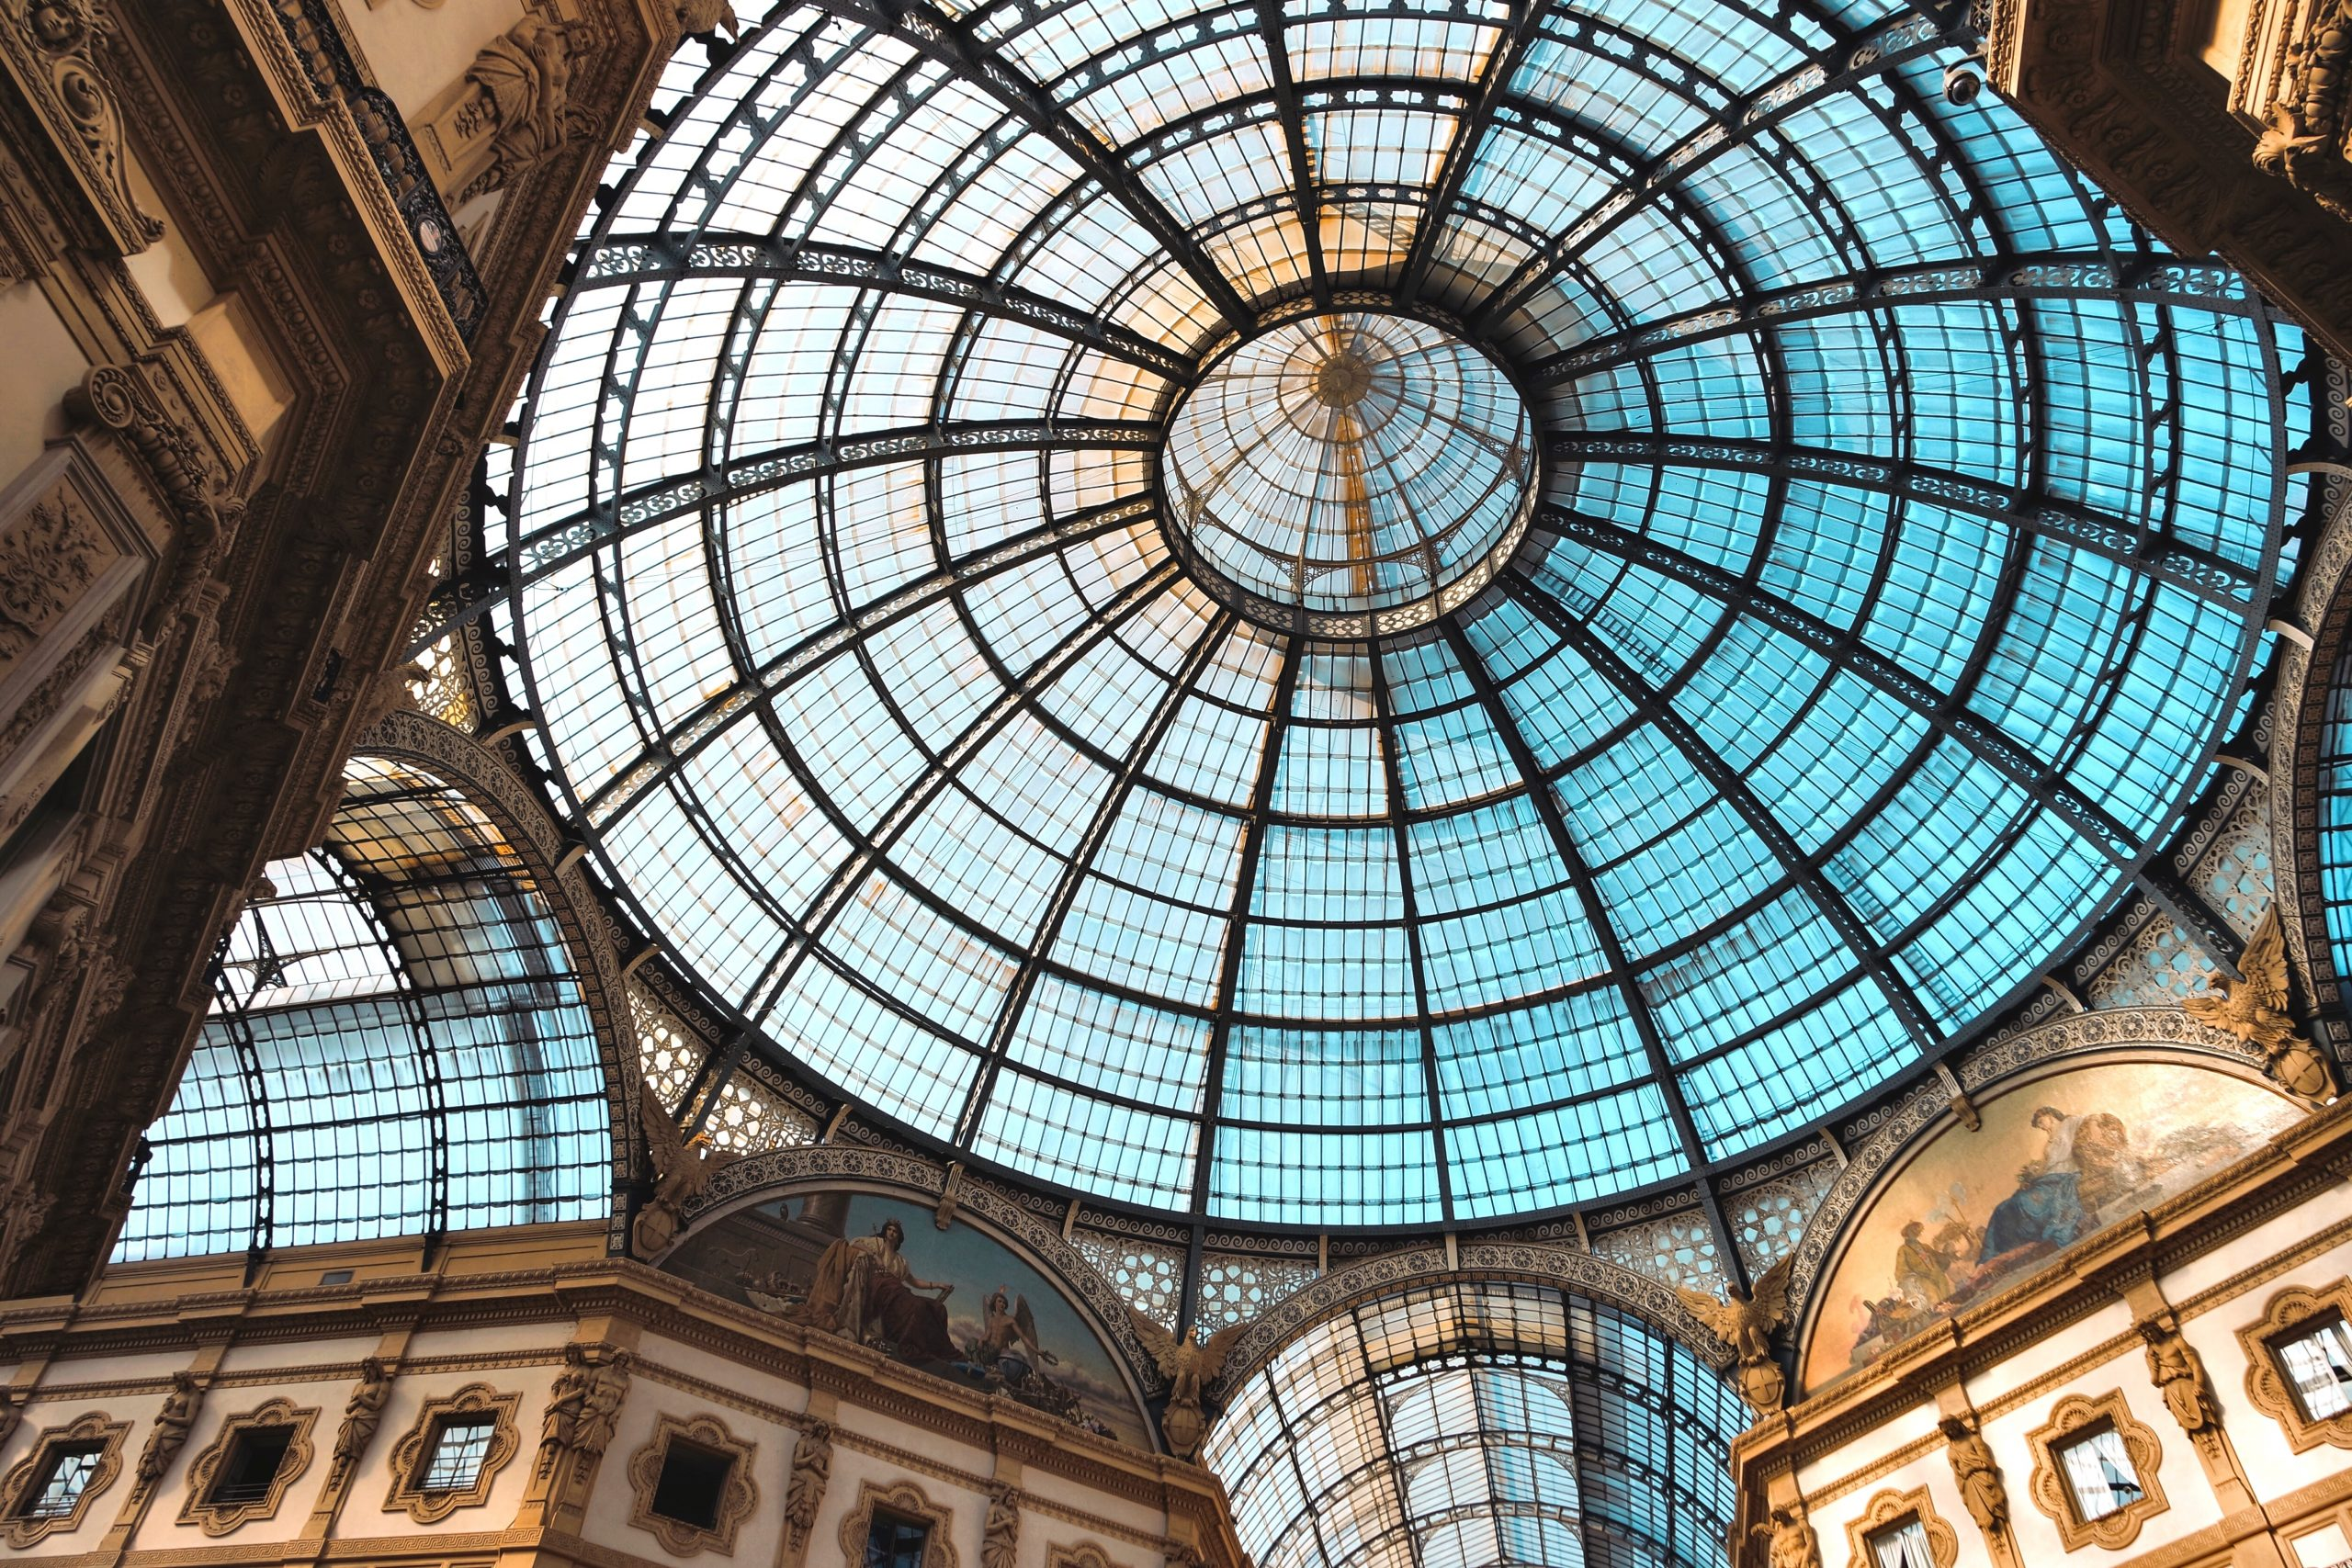 Gran Galleria Vittorio Emanuele II, one of the oldest shopping area of the World